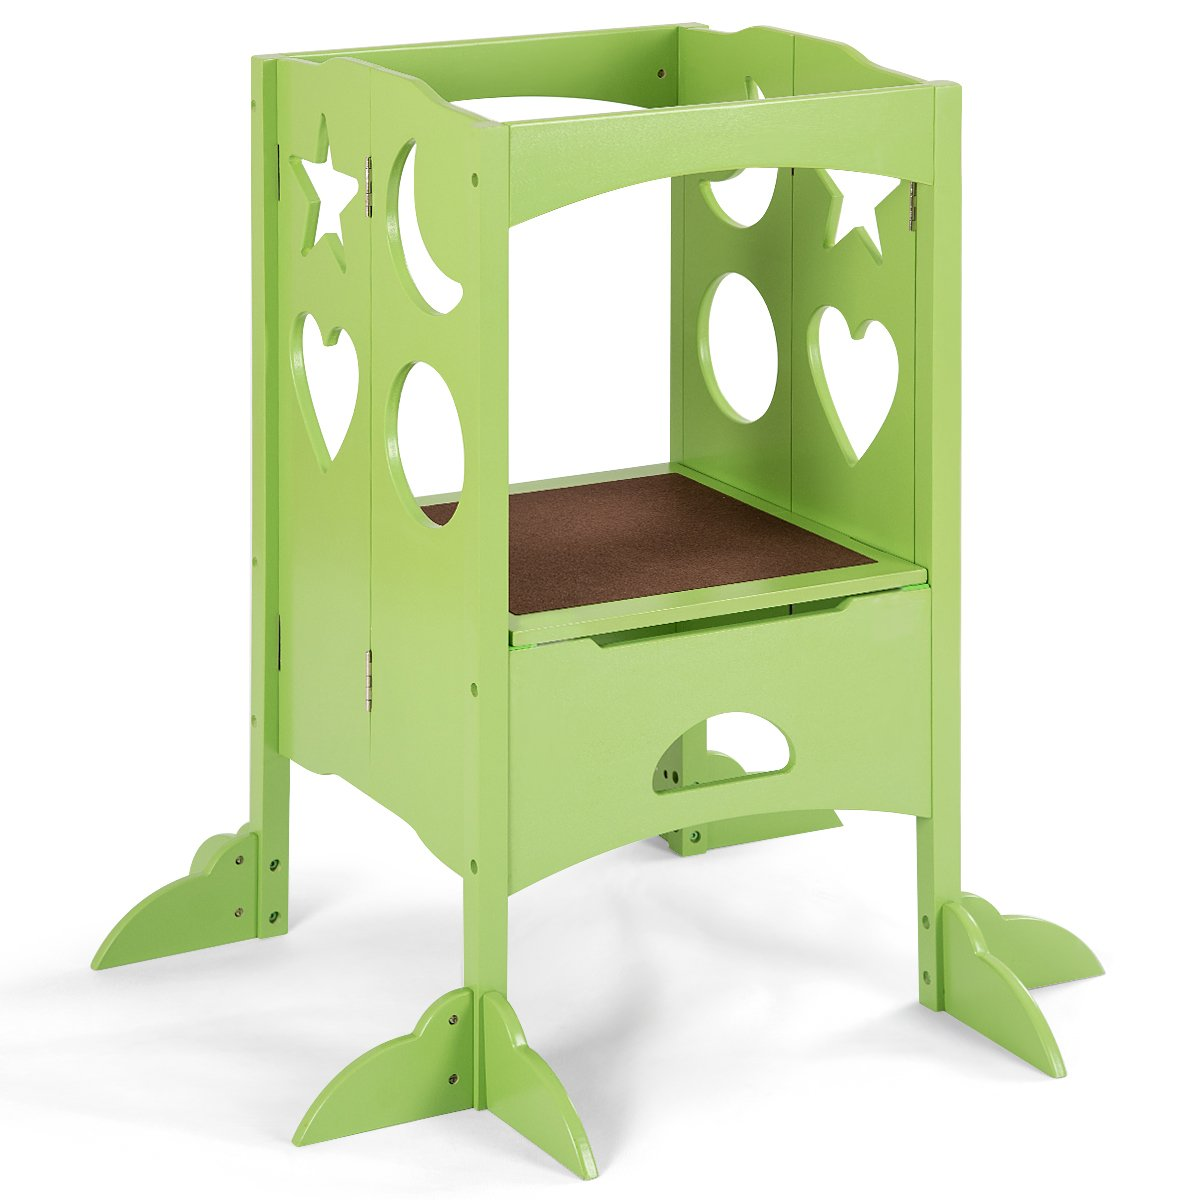 Costzon Kids Step Stool, Folding Safety Learning Stool with Climbing Holes & Non-Slippery Blanket, Perfect for Little Ones in Kitchen (Green)